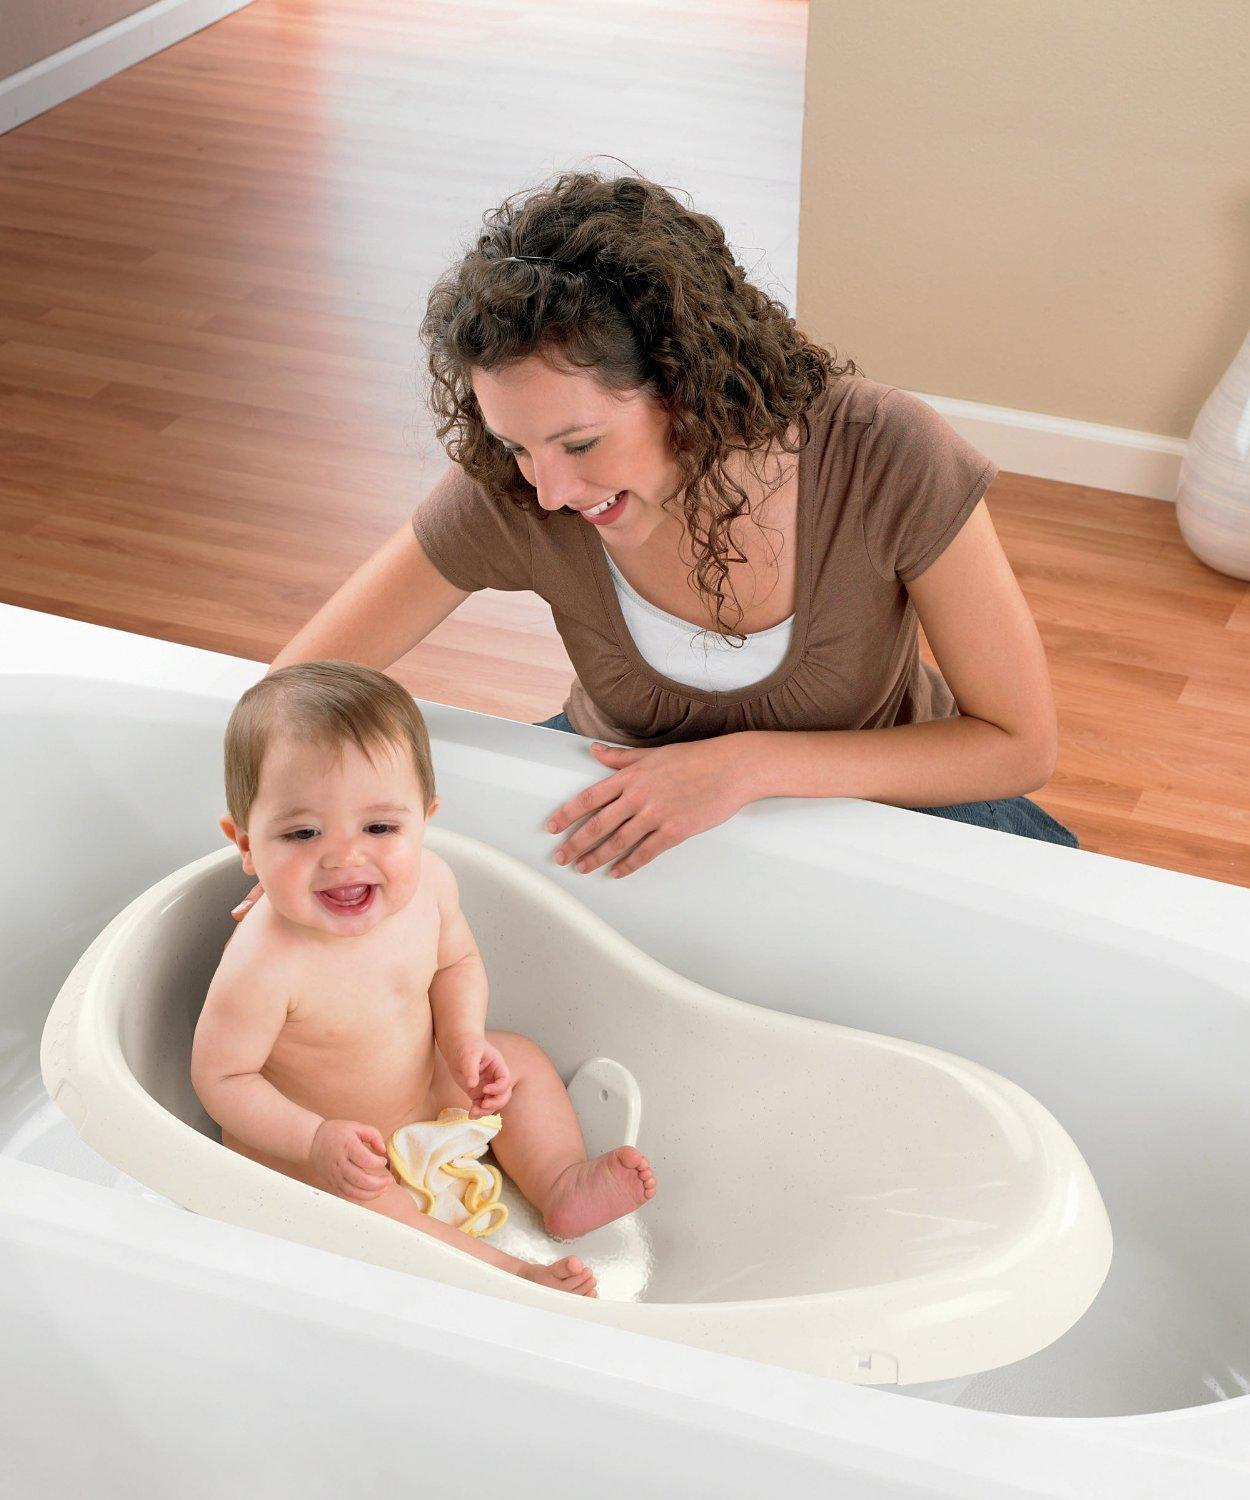 Amazon.com : Fisher-Price Calming Waters Vibration Bathing Tub : Baby